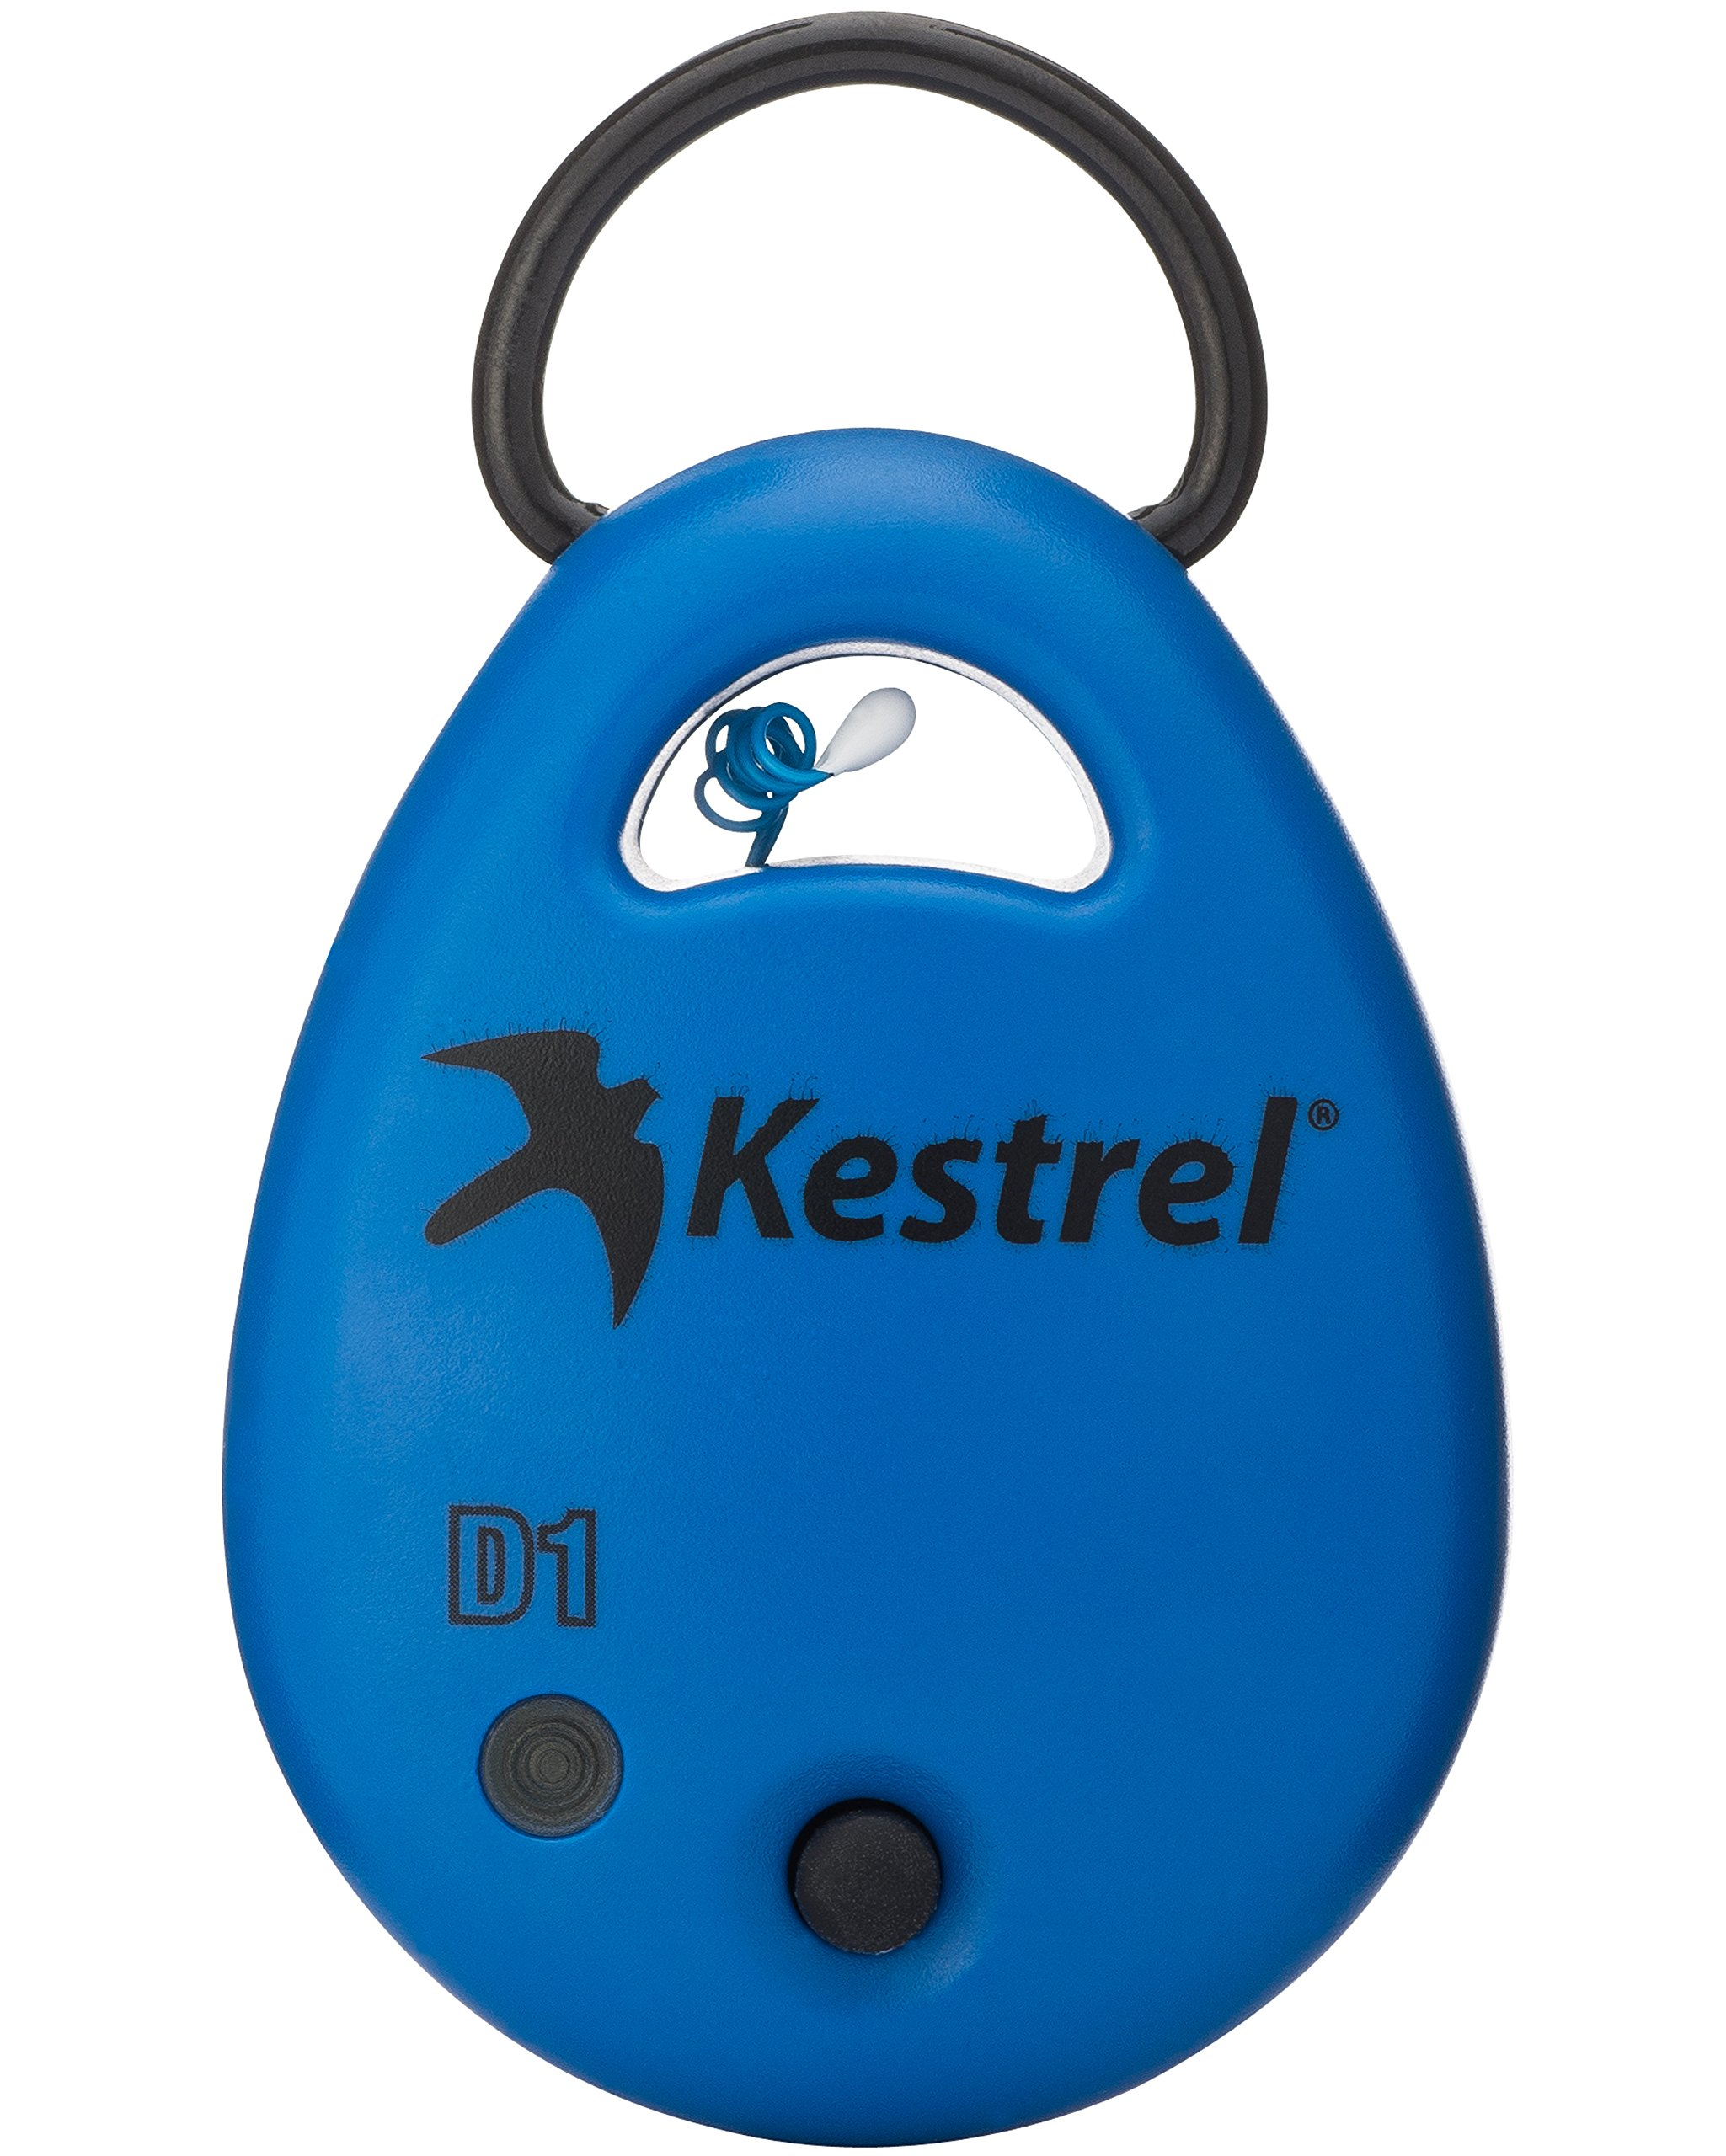 Kestrel Drop 1 Smart Temperature Data Logger by Kestrel